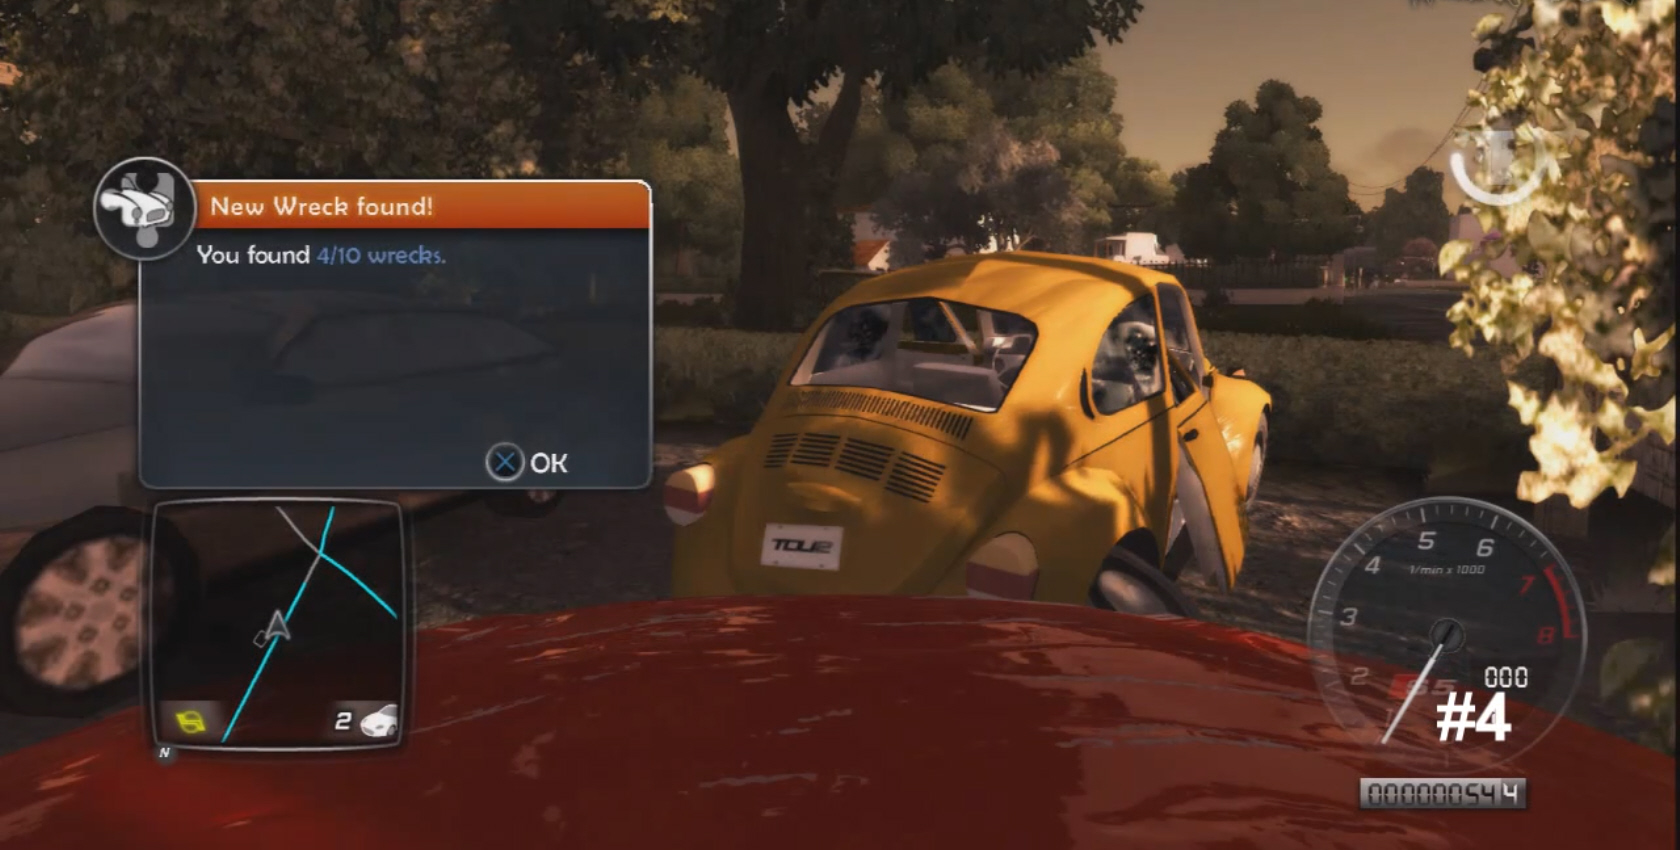 Test Drive Unlimited 2 Wreck Cars Locations Guide (Xbox